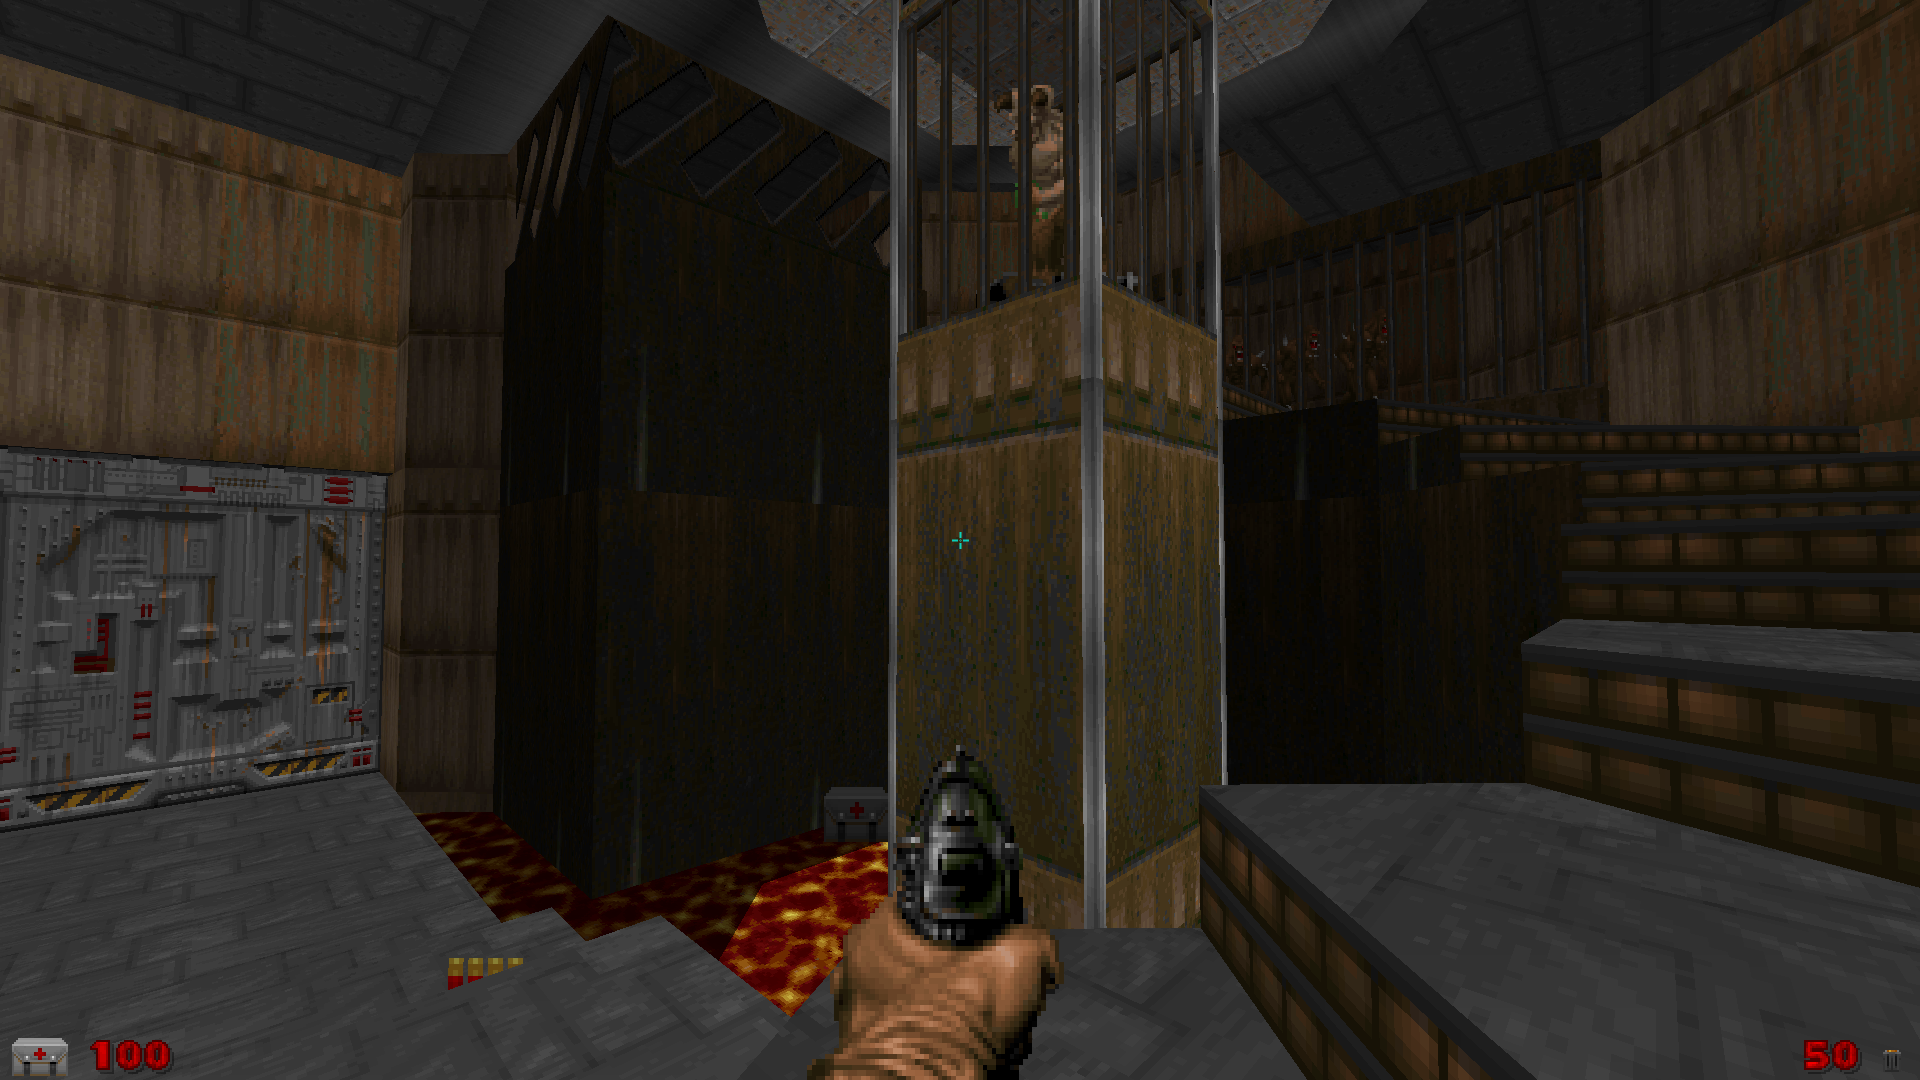 Screenshot_Doom_20200628_180508.png.d32a9b7a4e7226840532099866c2da93.png